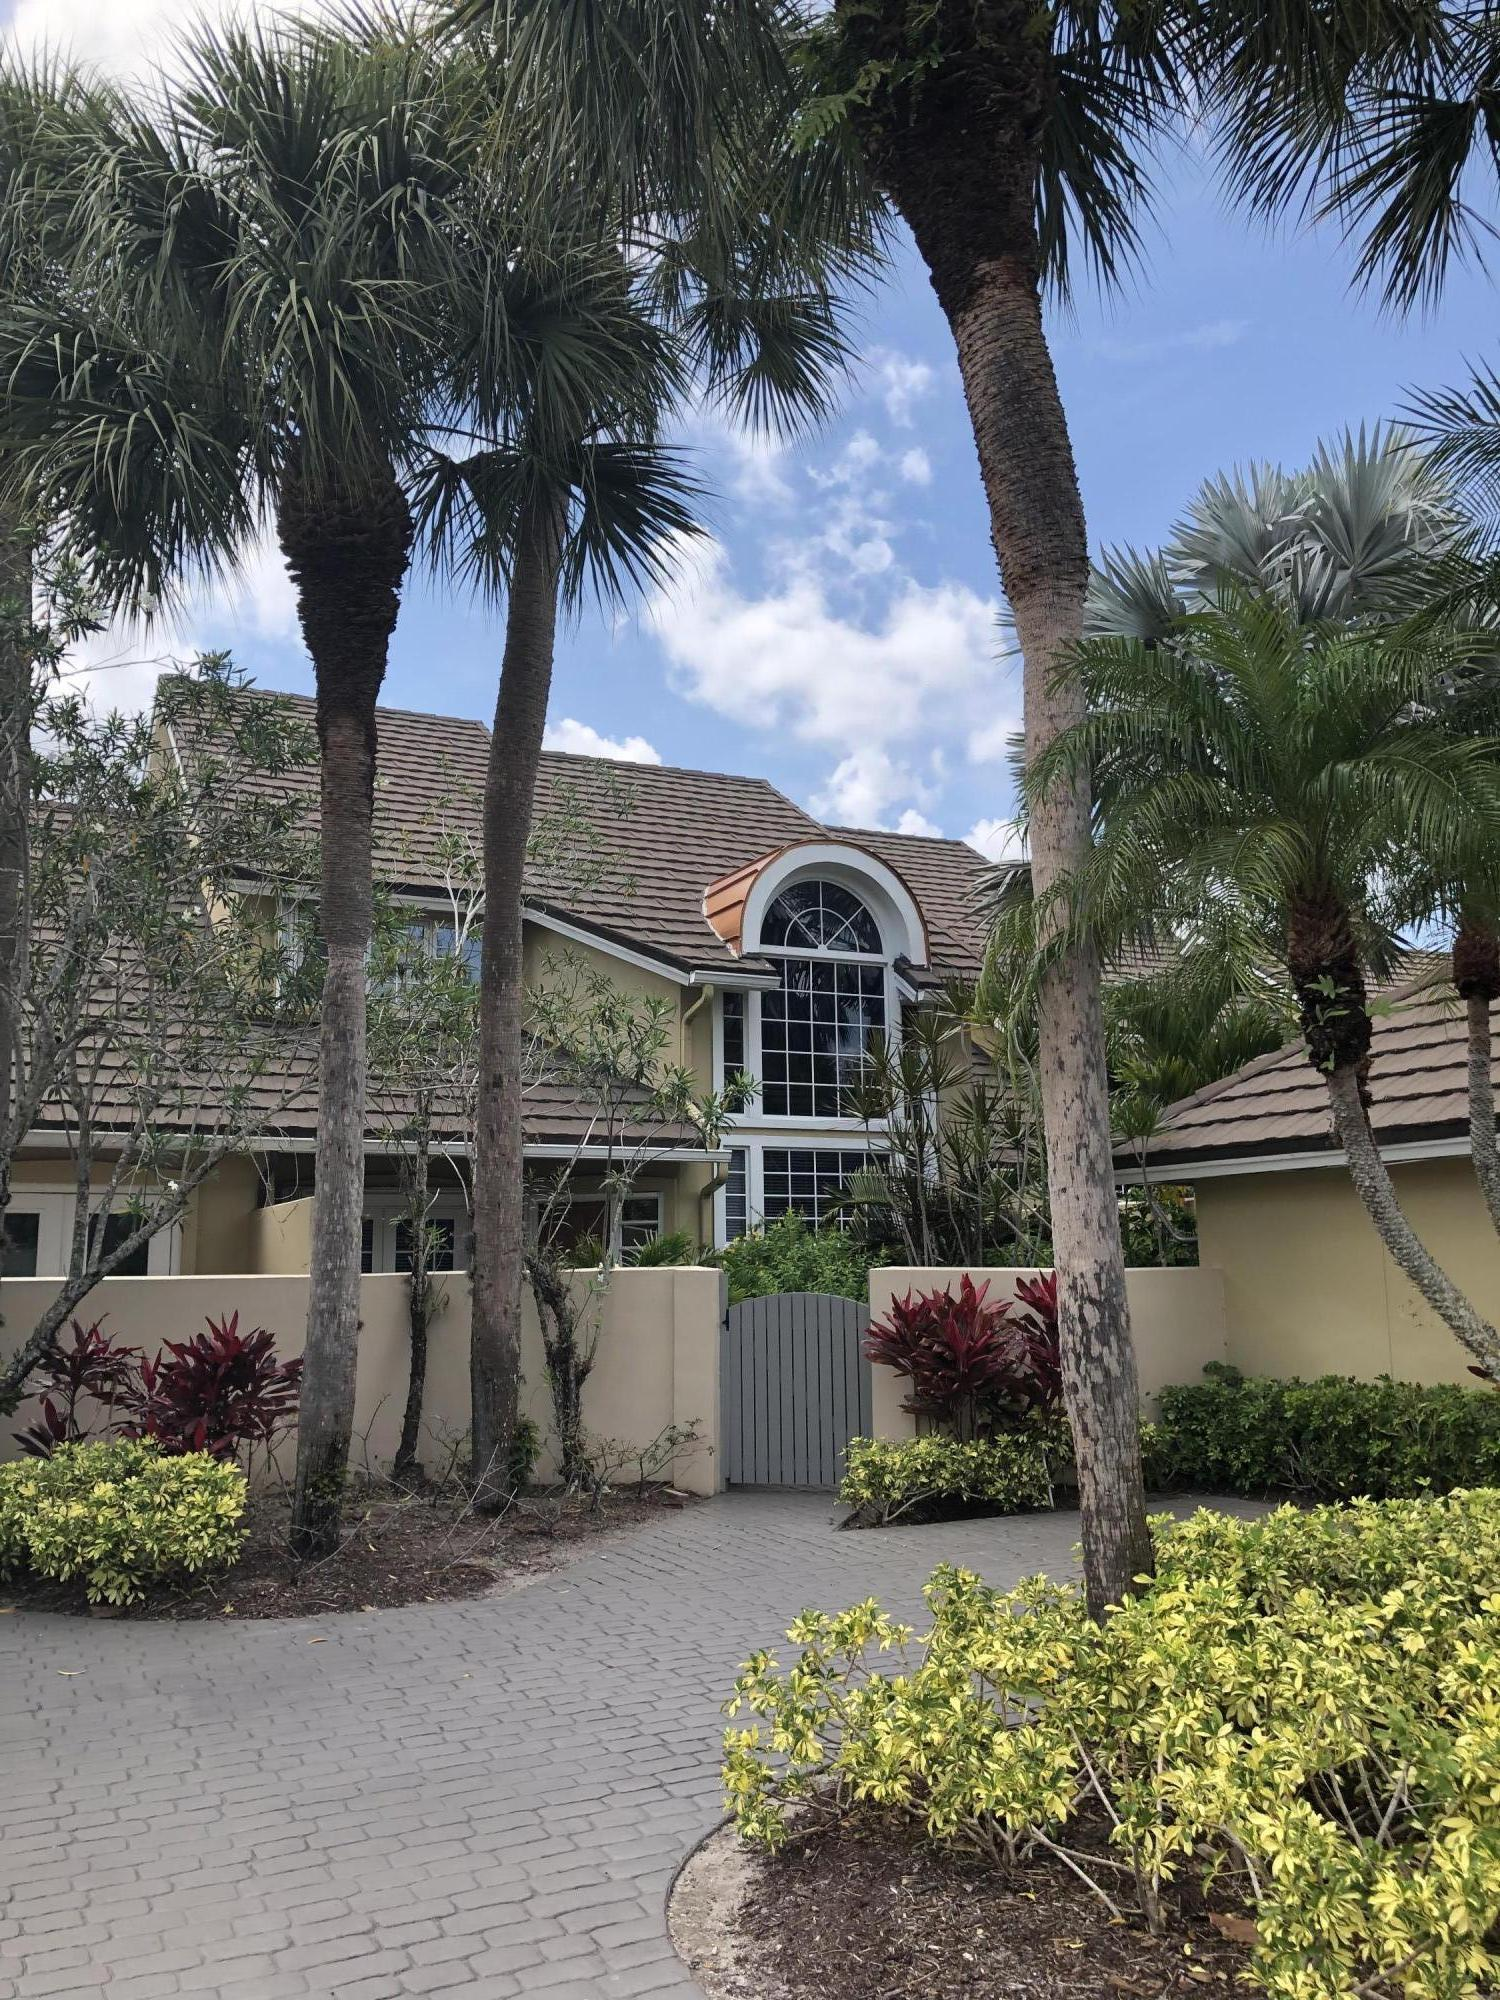 2625 Muirfield Court, Wellington, Florida 33414, 2 Bedrooms Bedrooms, ,2 BathroomsBathrooms,Townhouse,For Rent,PALM BEACH POLO,Muirfield,1,RX-10519584